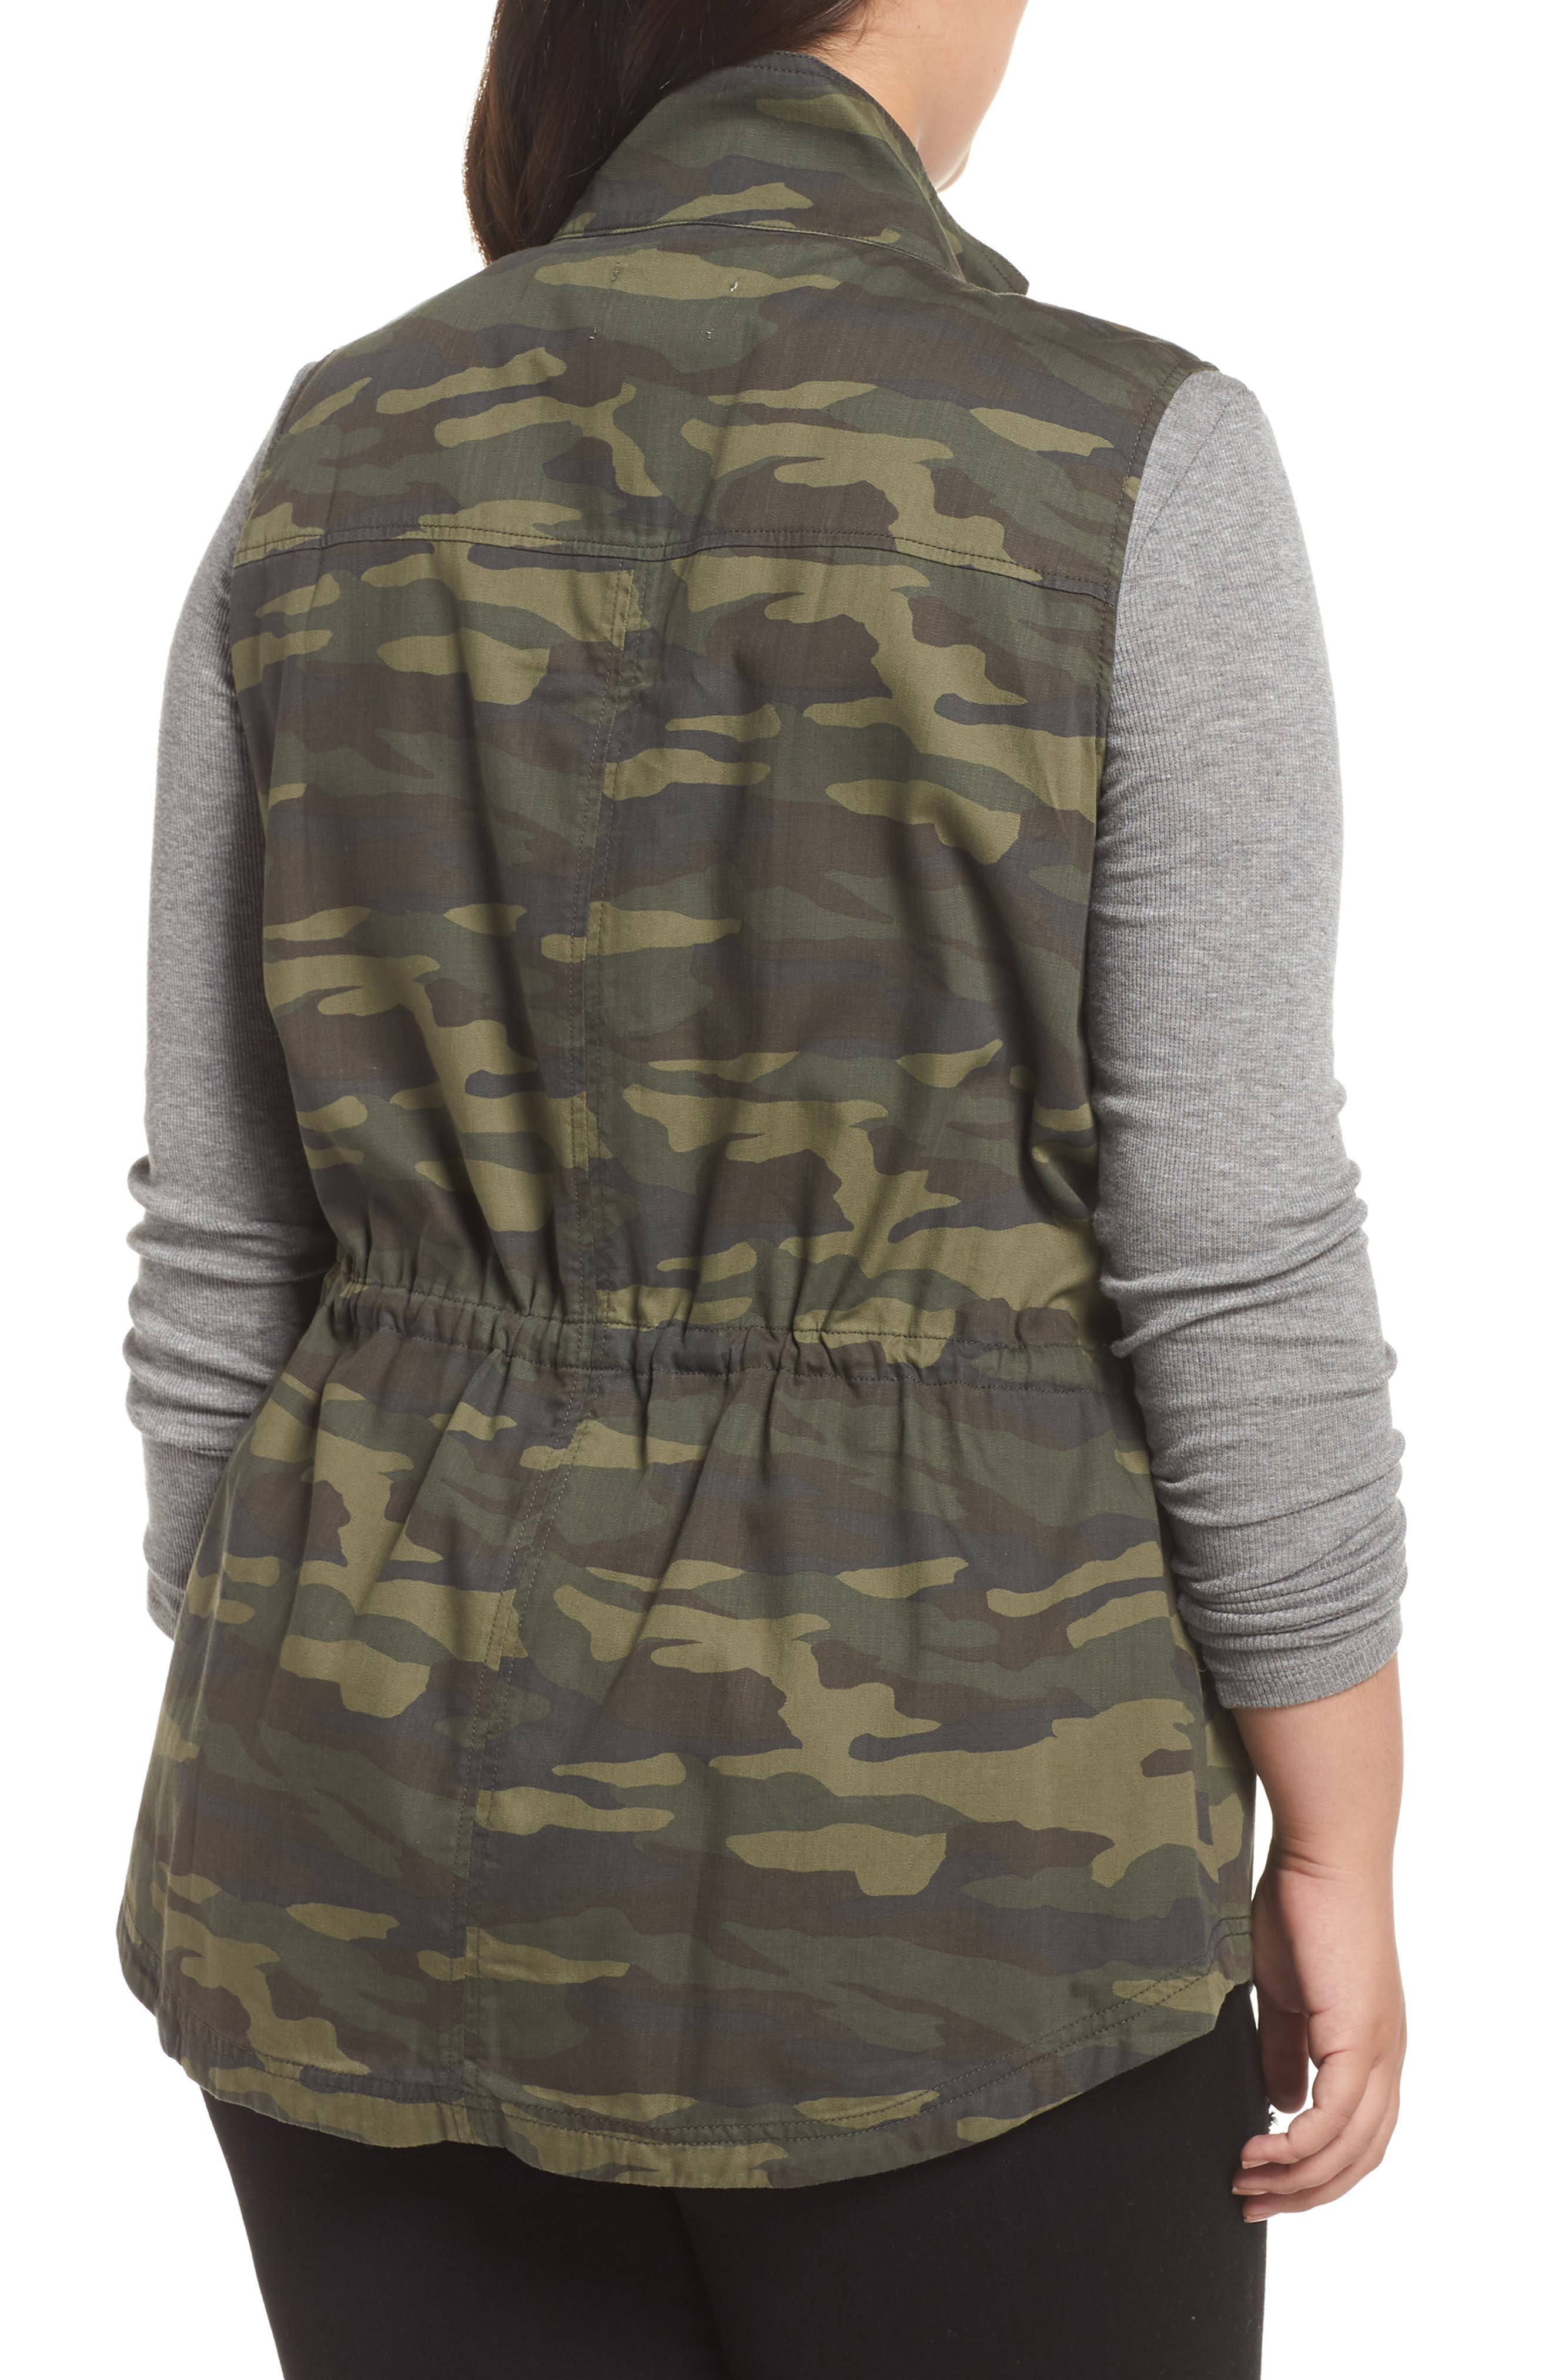 Utility Vest,                             Alternate thumbnail 2, color,                             OLIVE LG CAMO PRT